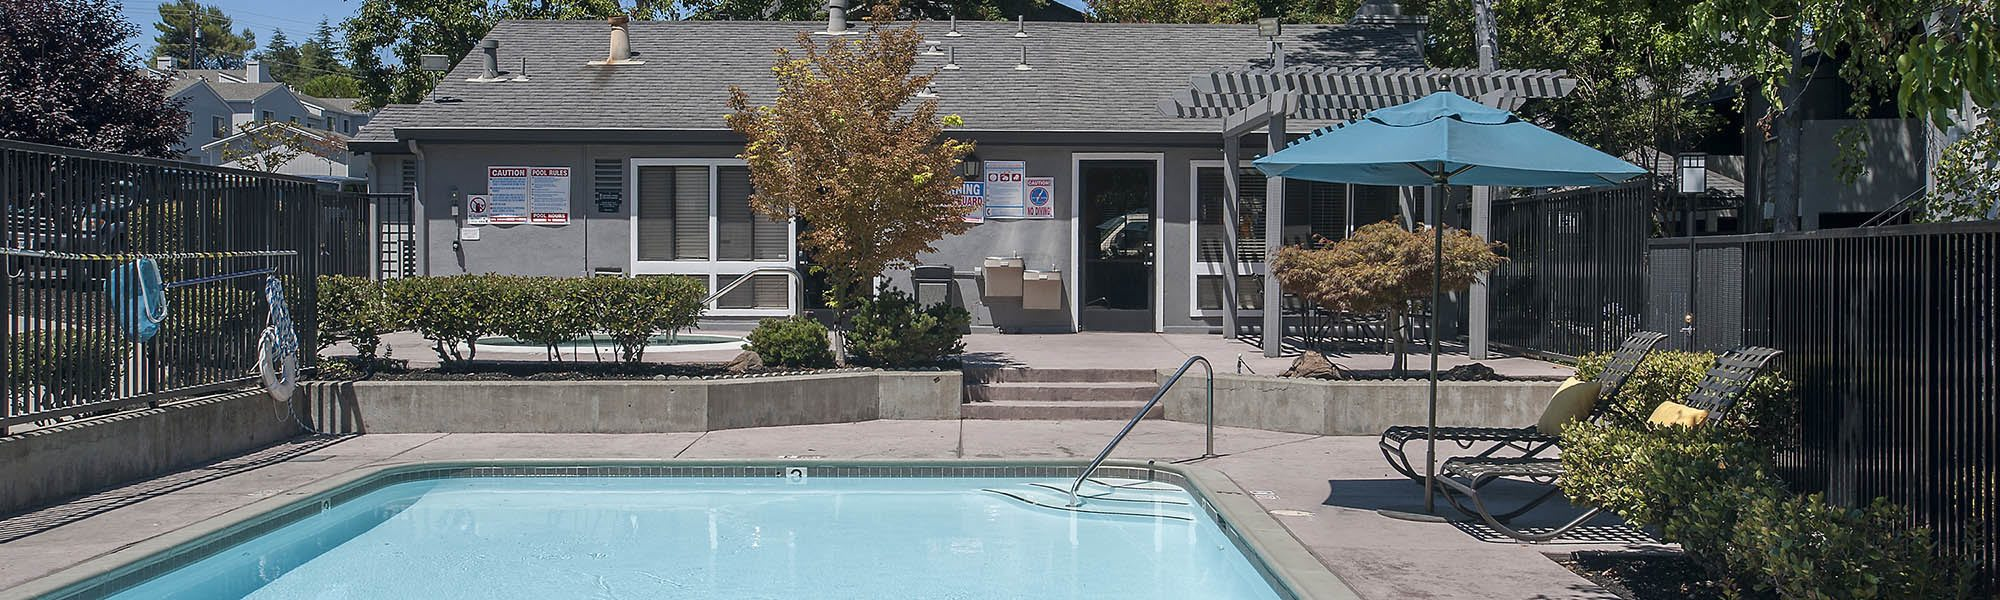 See what we have to offer by visiting Plum Tree Apartment Homes's amenities page.